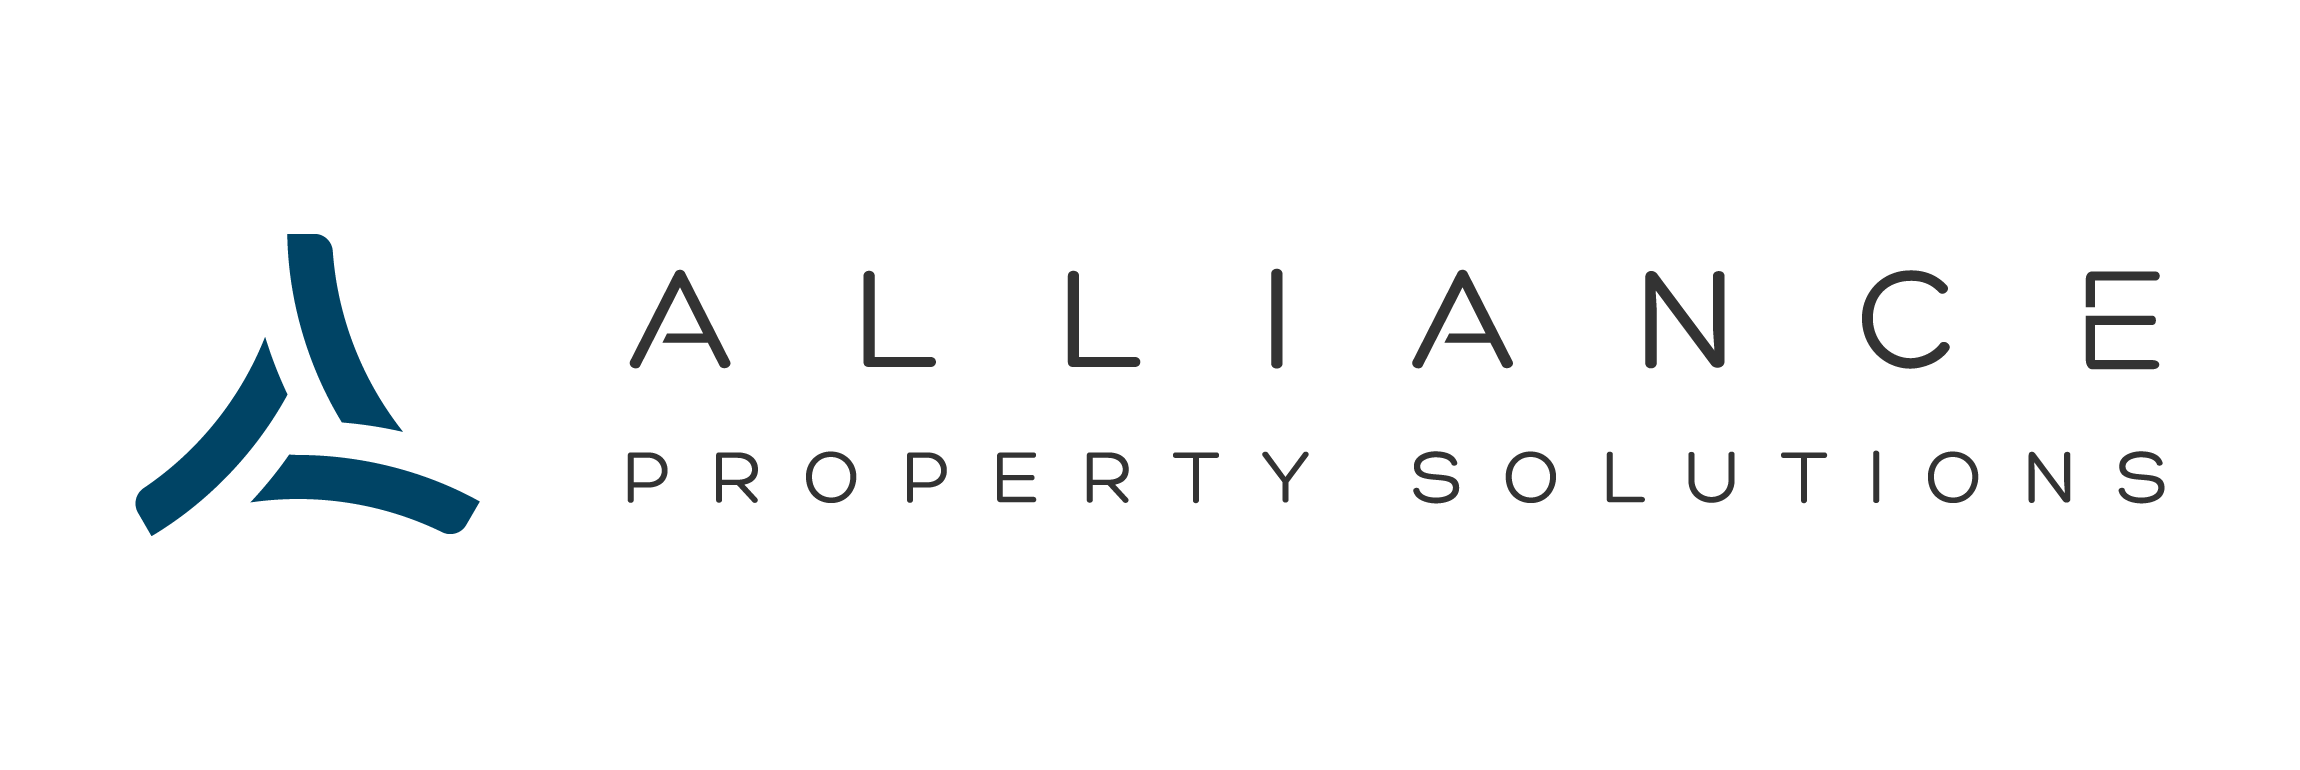 Alliance Property Solutions, LLC